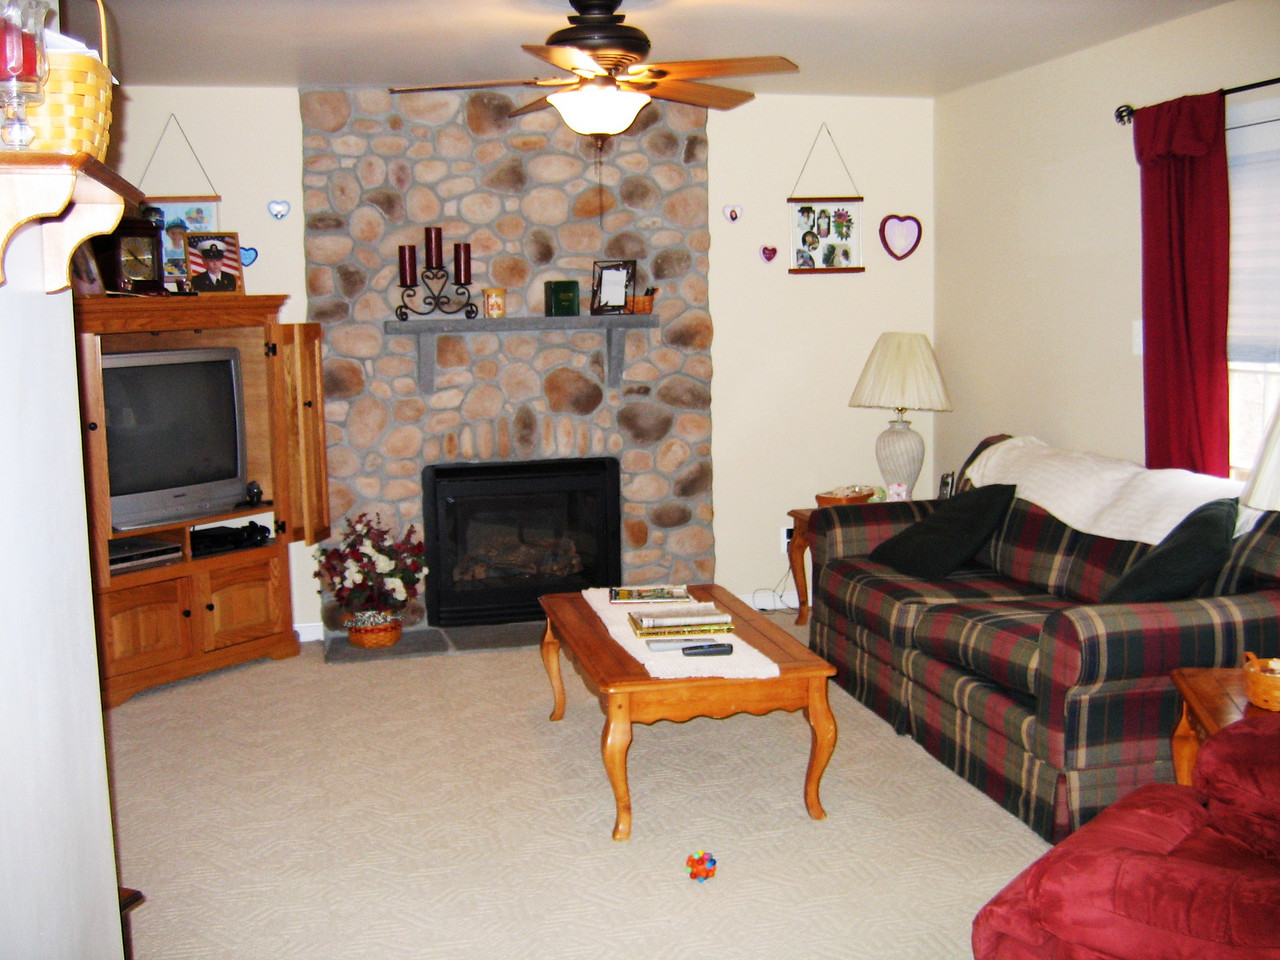 Past the entryway to the left is the living room with gas fireplace.